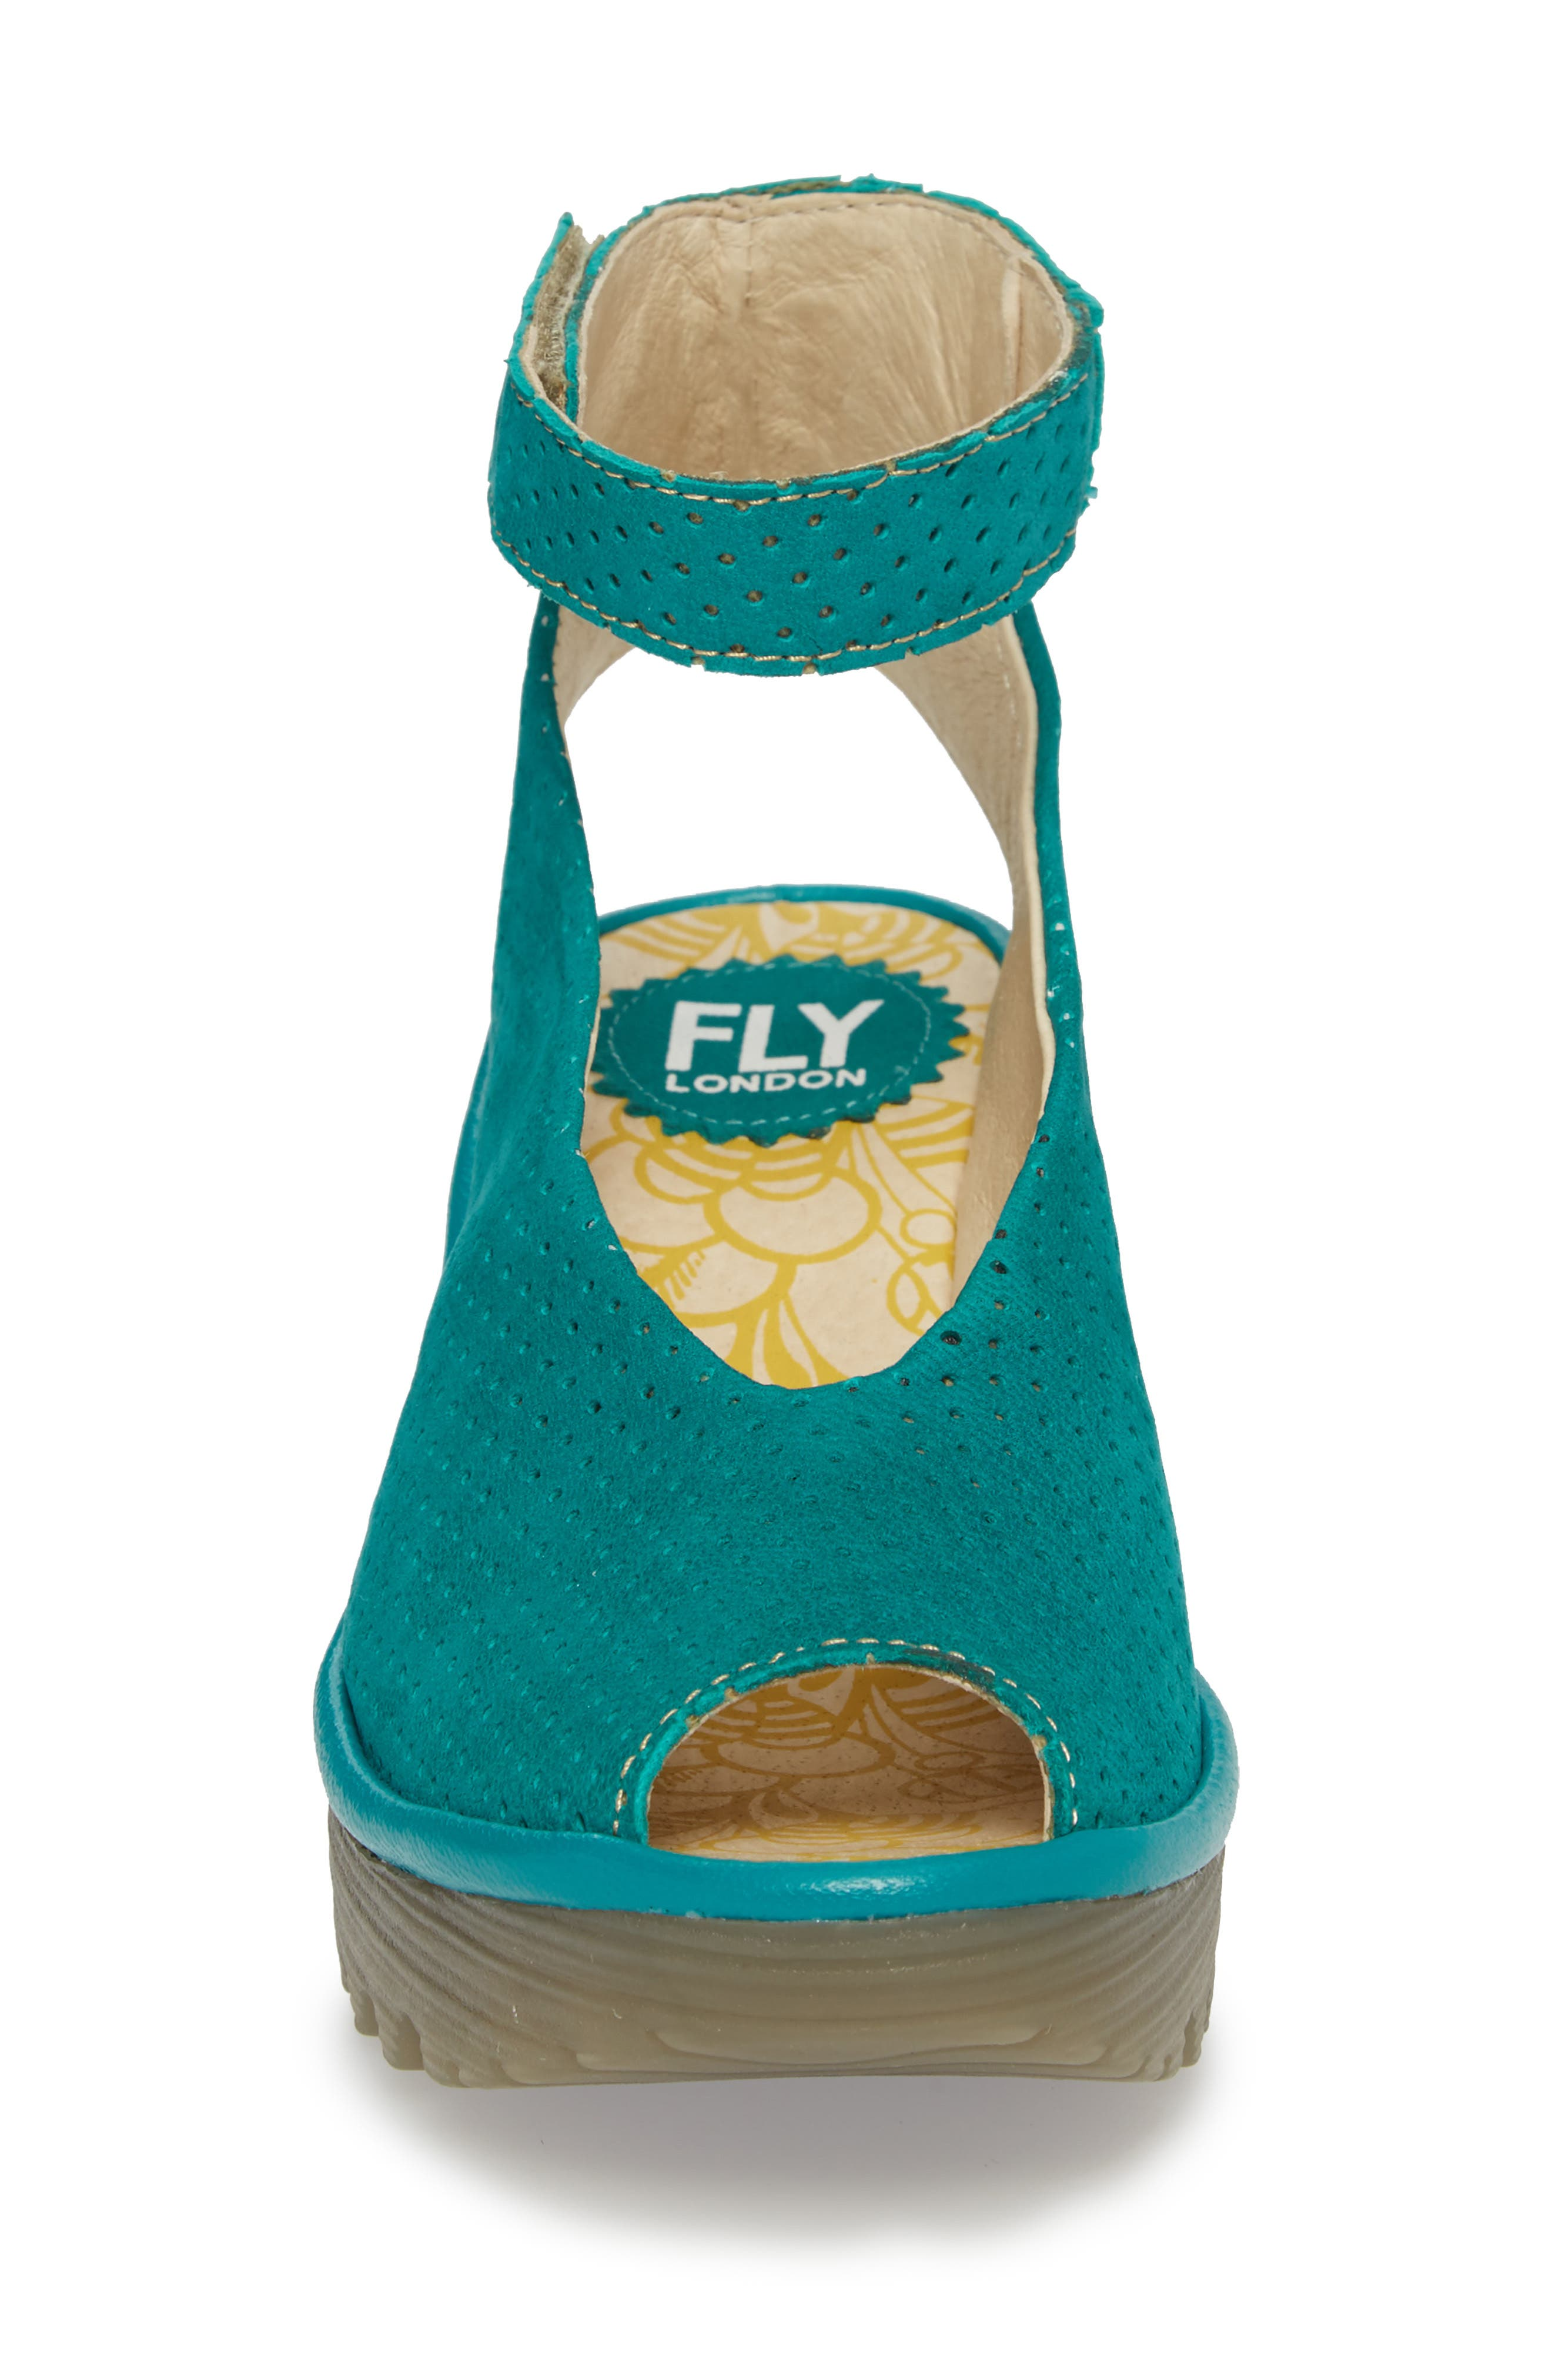 'Yala' Perforated Leather Sandal,                             Alternate thumbnail 4, color,                             Green Leather